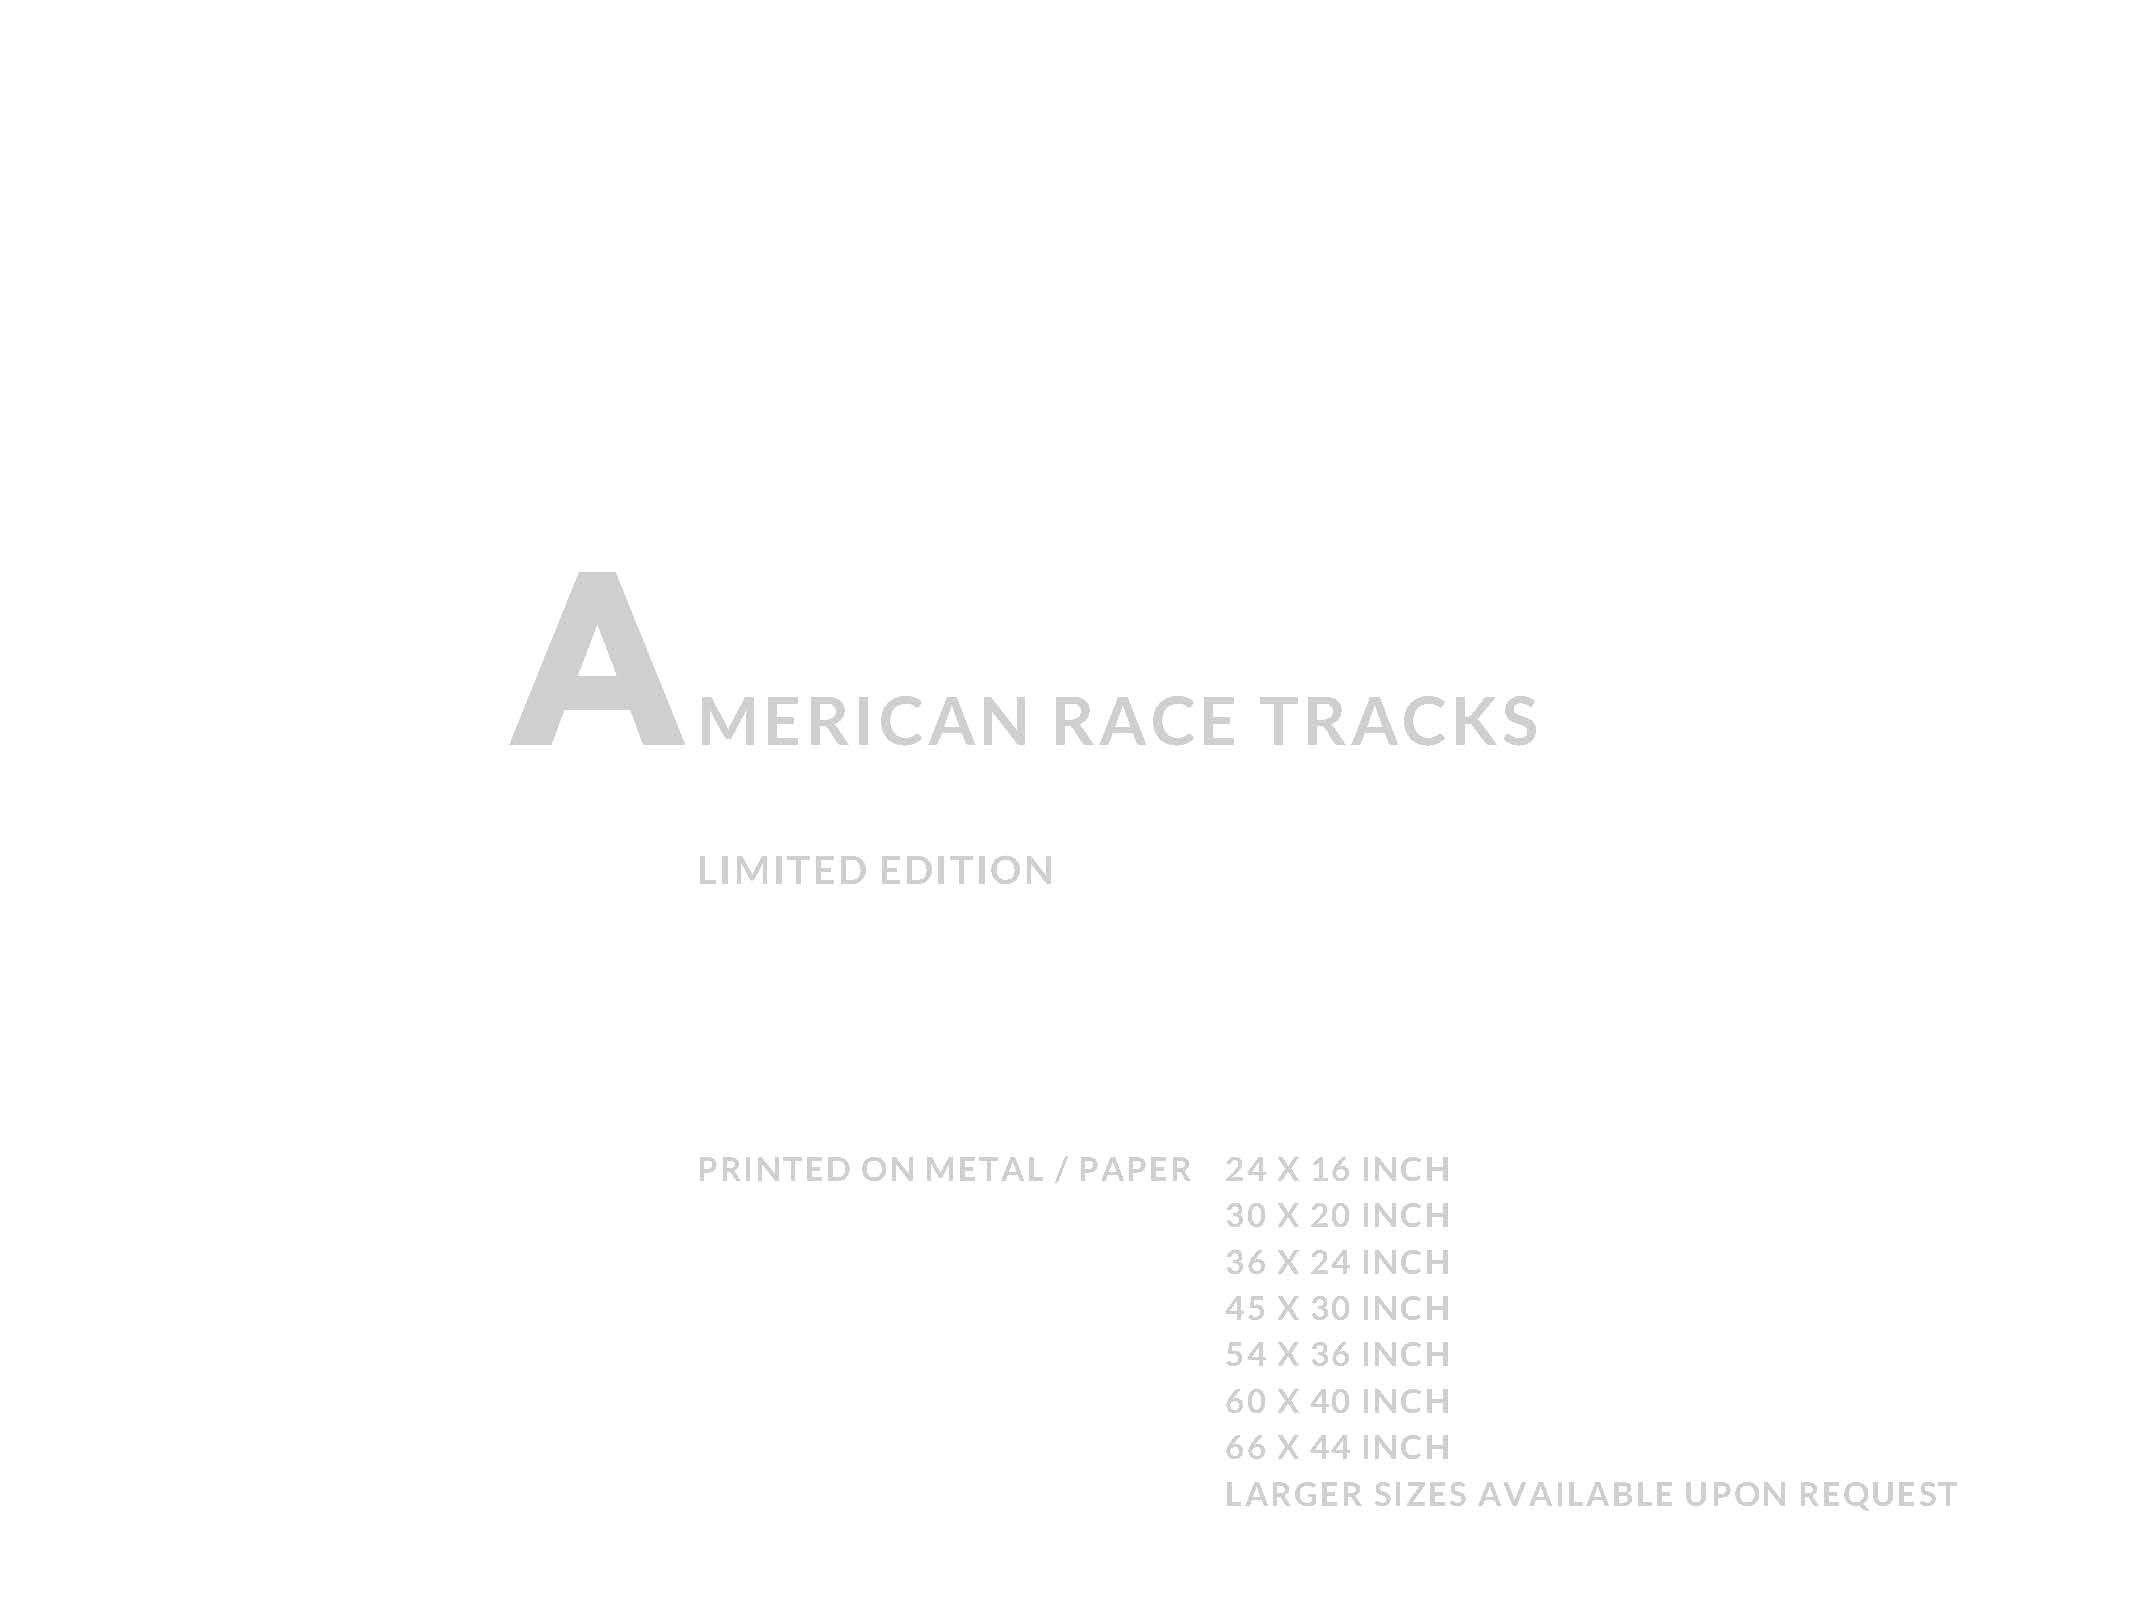 race tracks_reduced_Page_02.jpg